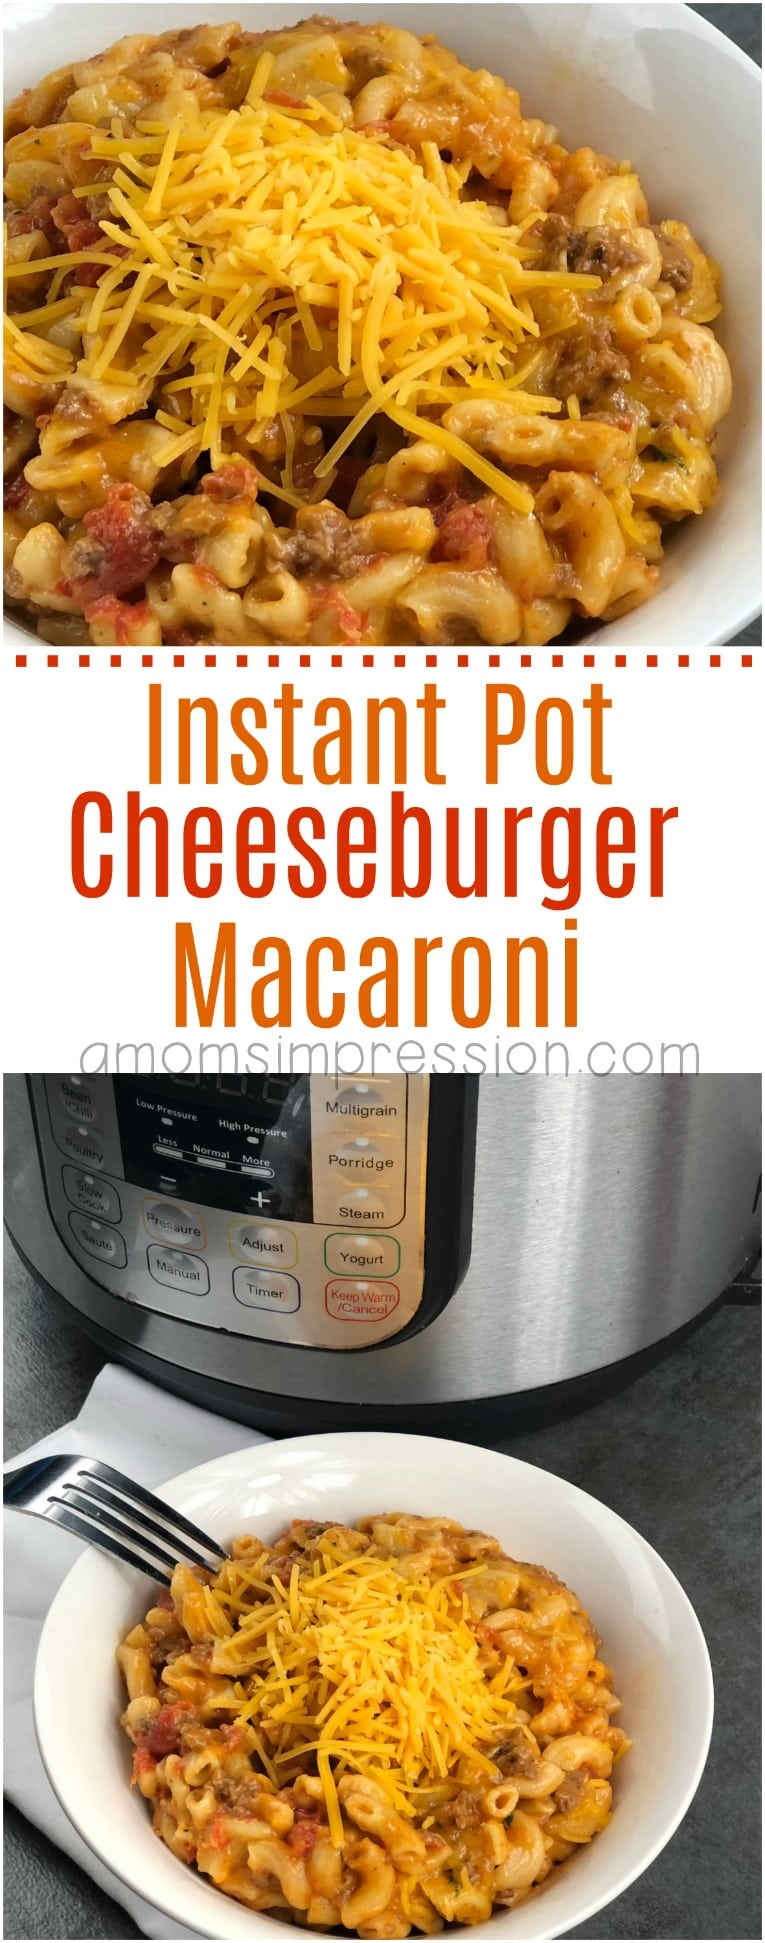 Remember eating Hamburger Helper Cheeseburger Macaroni as a child? This homemade version is easy, tasty and made in under 15 minutes in your pressure cooker. Your family is going to love this Instant Pot Cheeseburger Macaroni recipe.